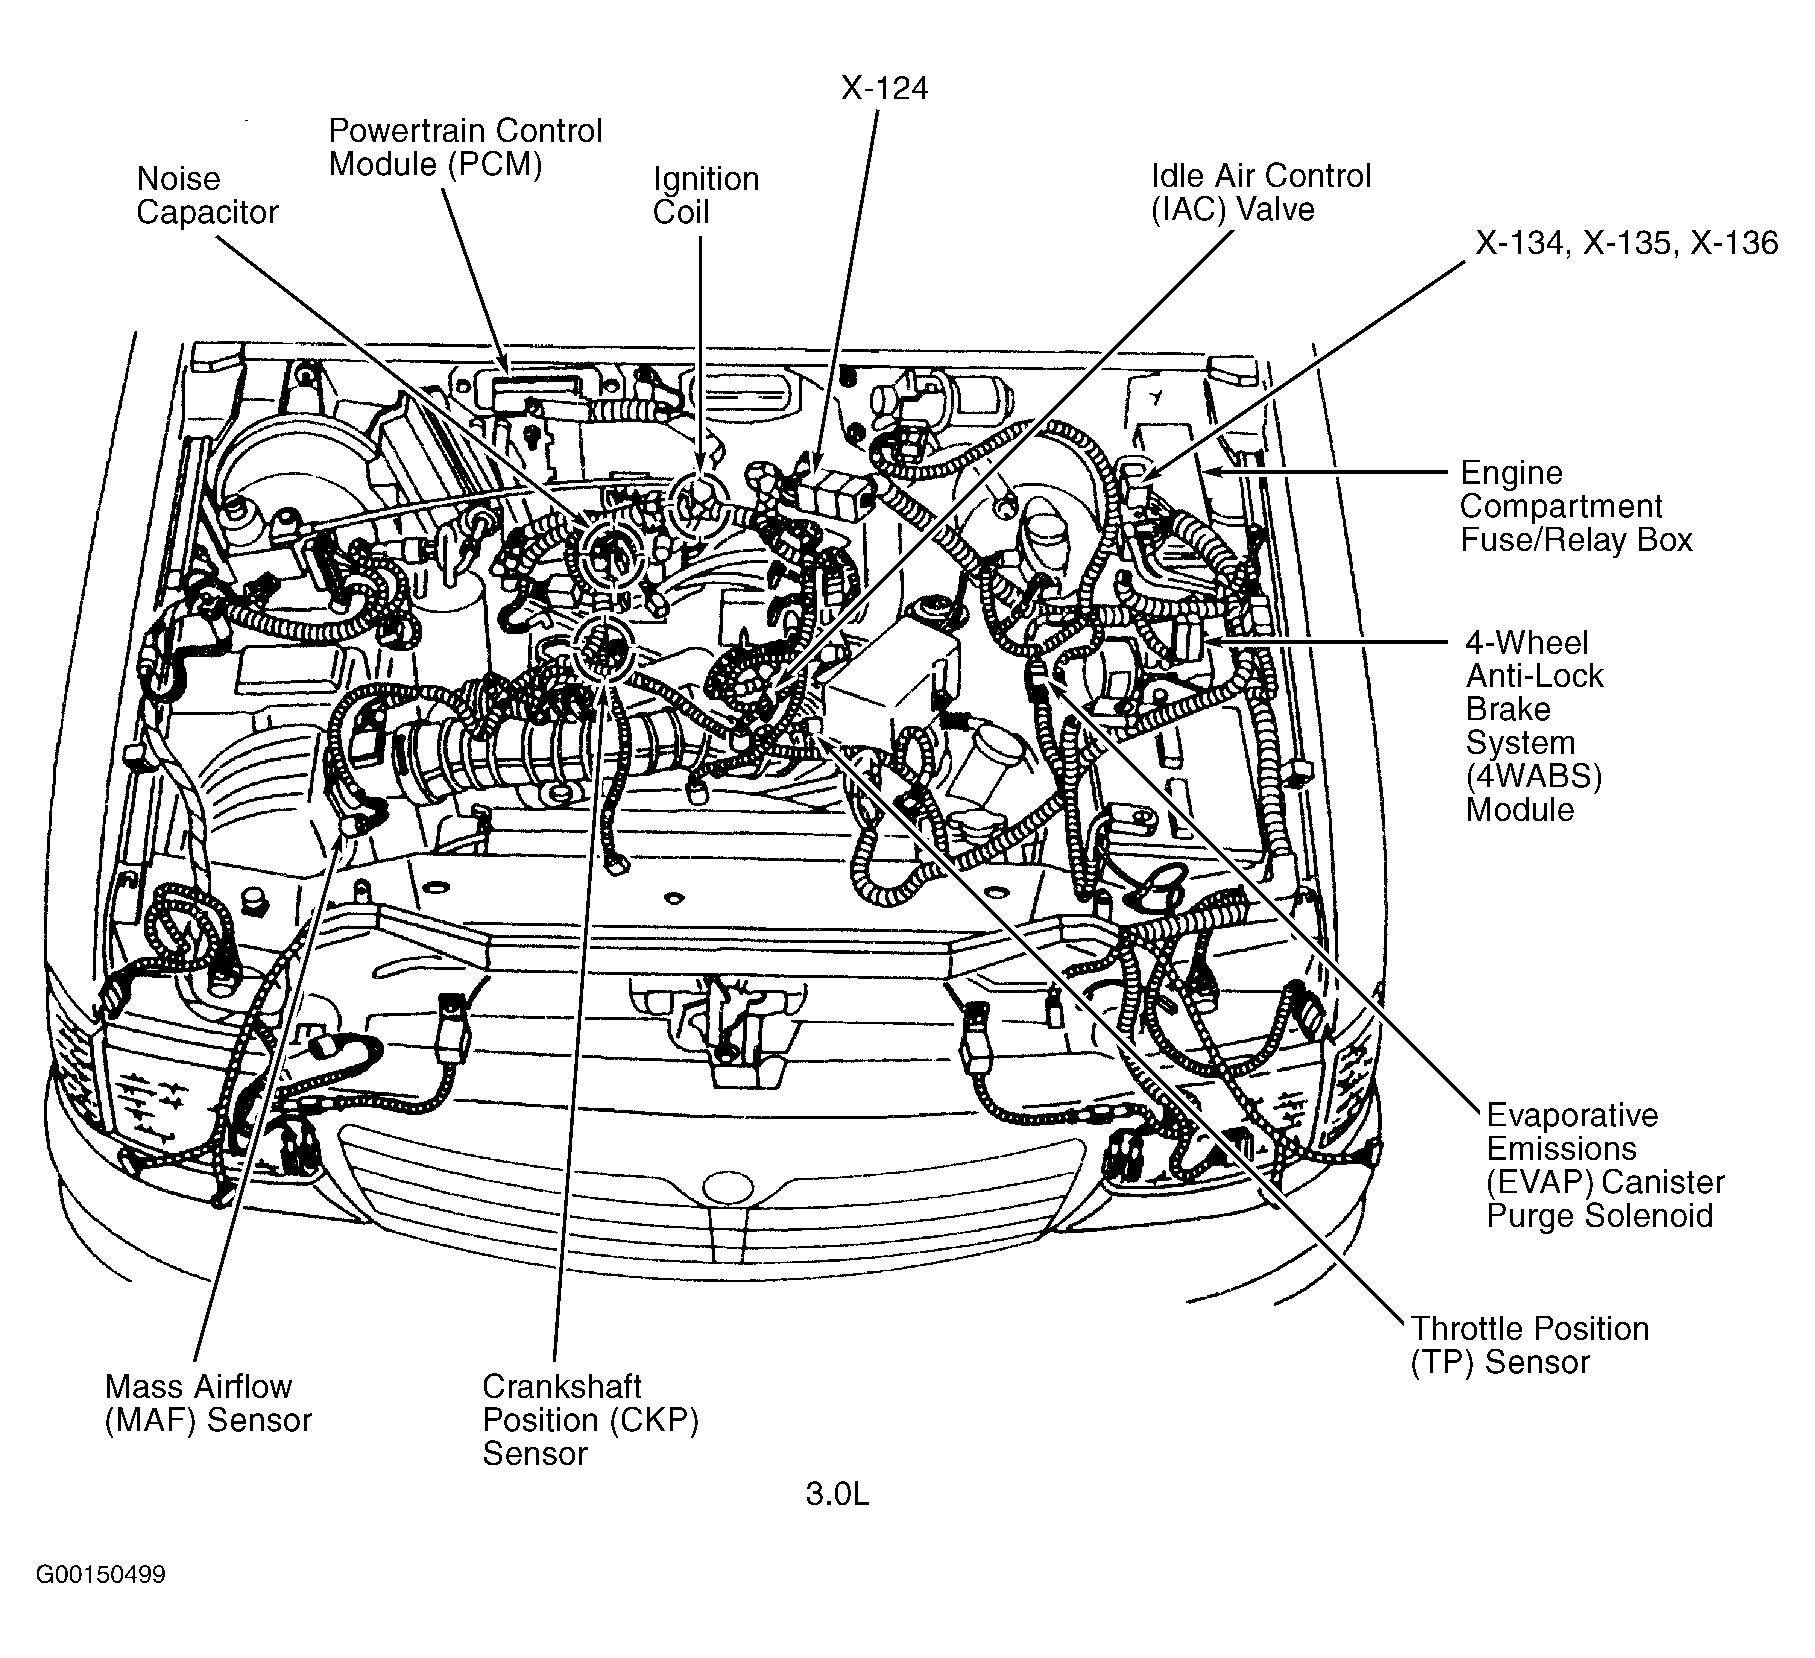 2006 mazda 6 engine parts diagram  u2022 wiring diagram for free